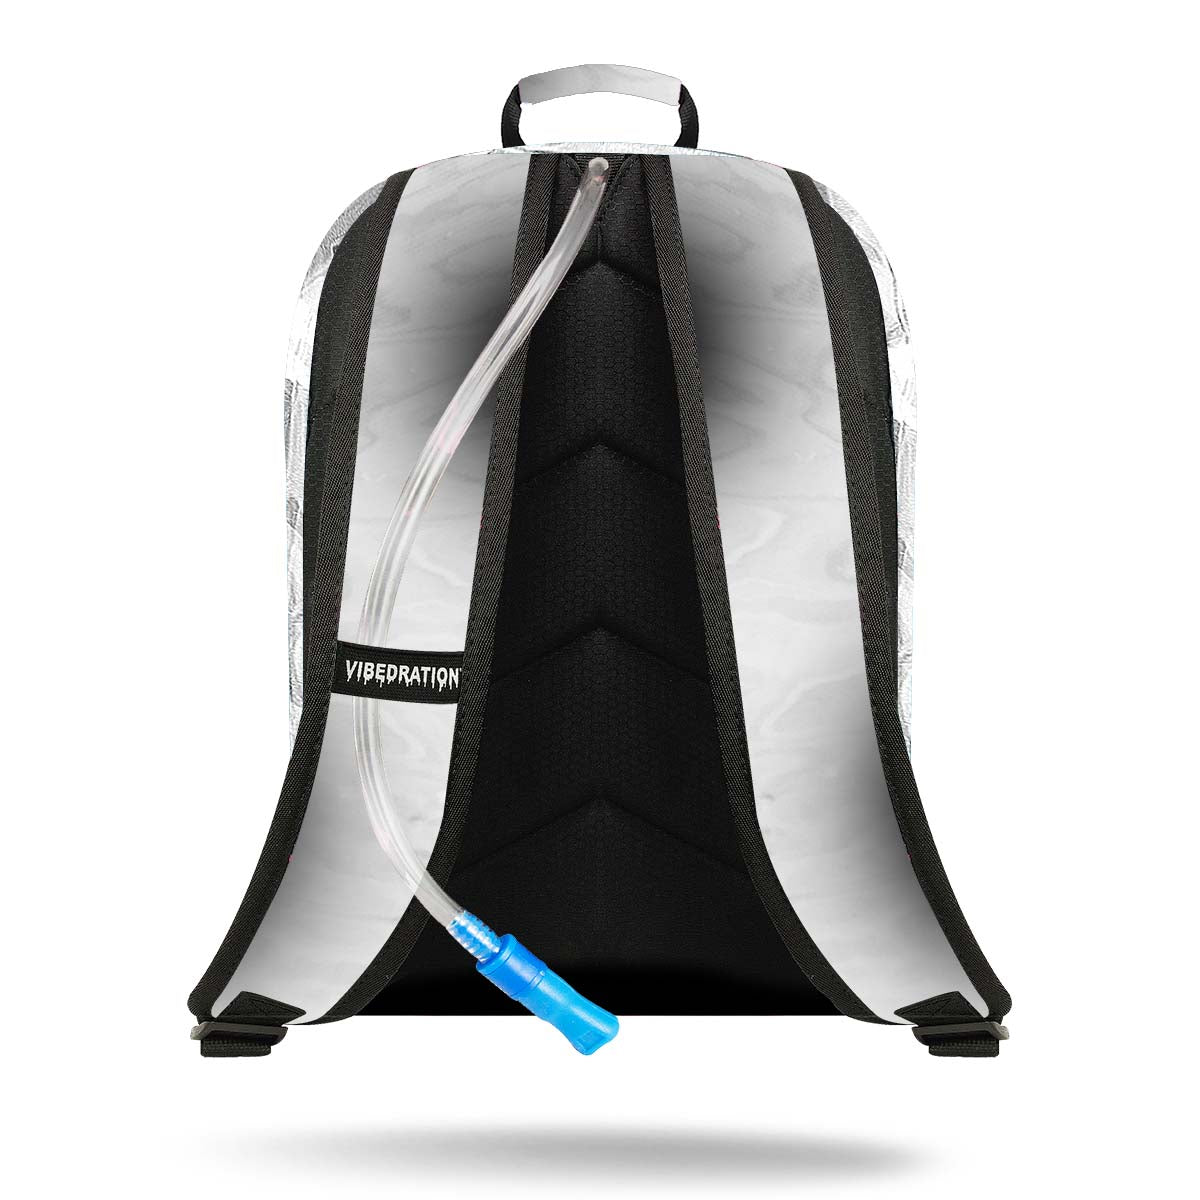 Transparent hydration backpack